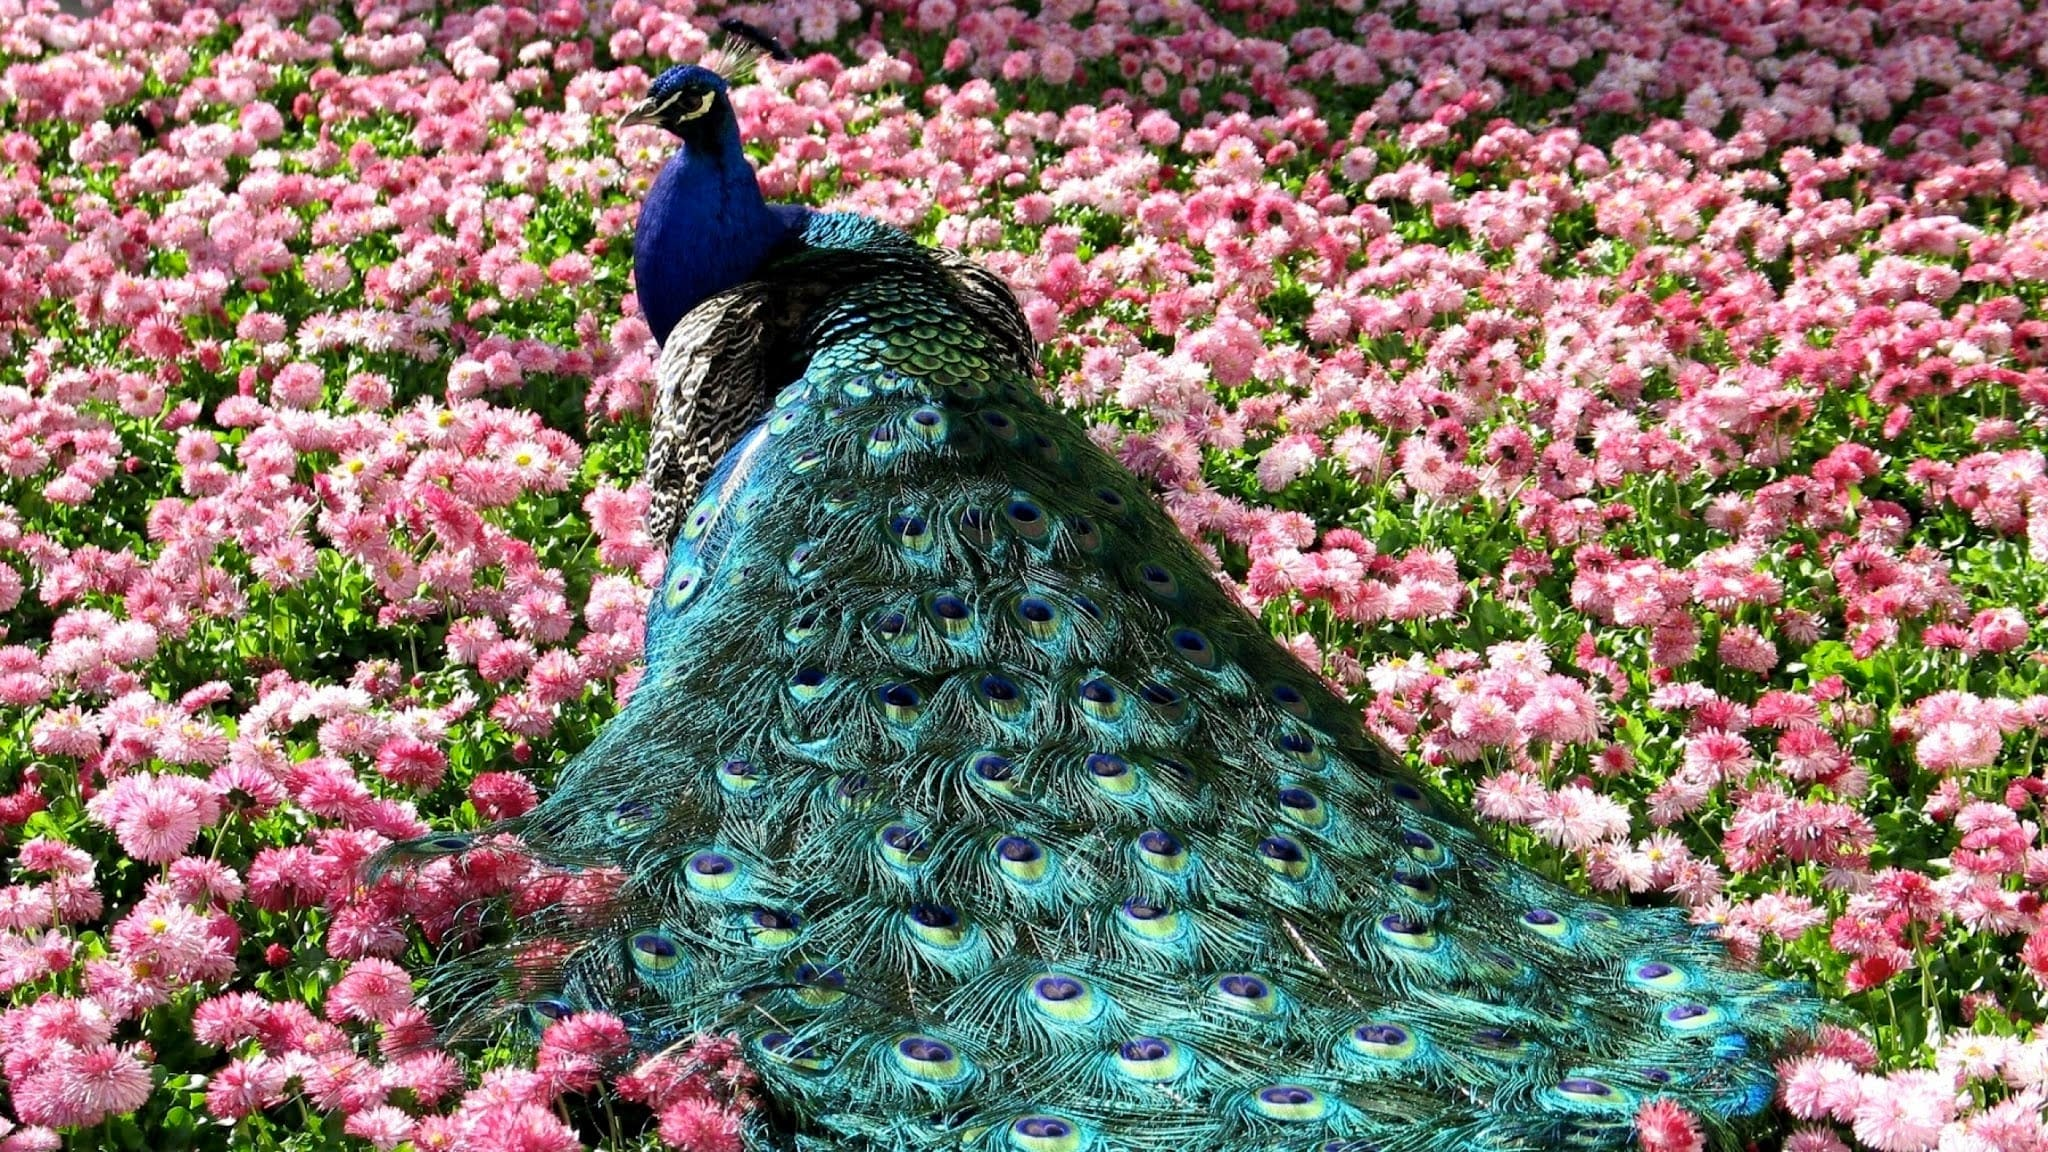 Peacock Desktop wallpaper